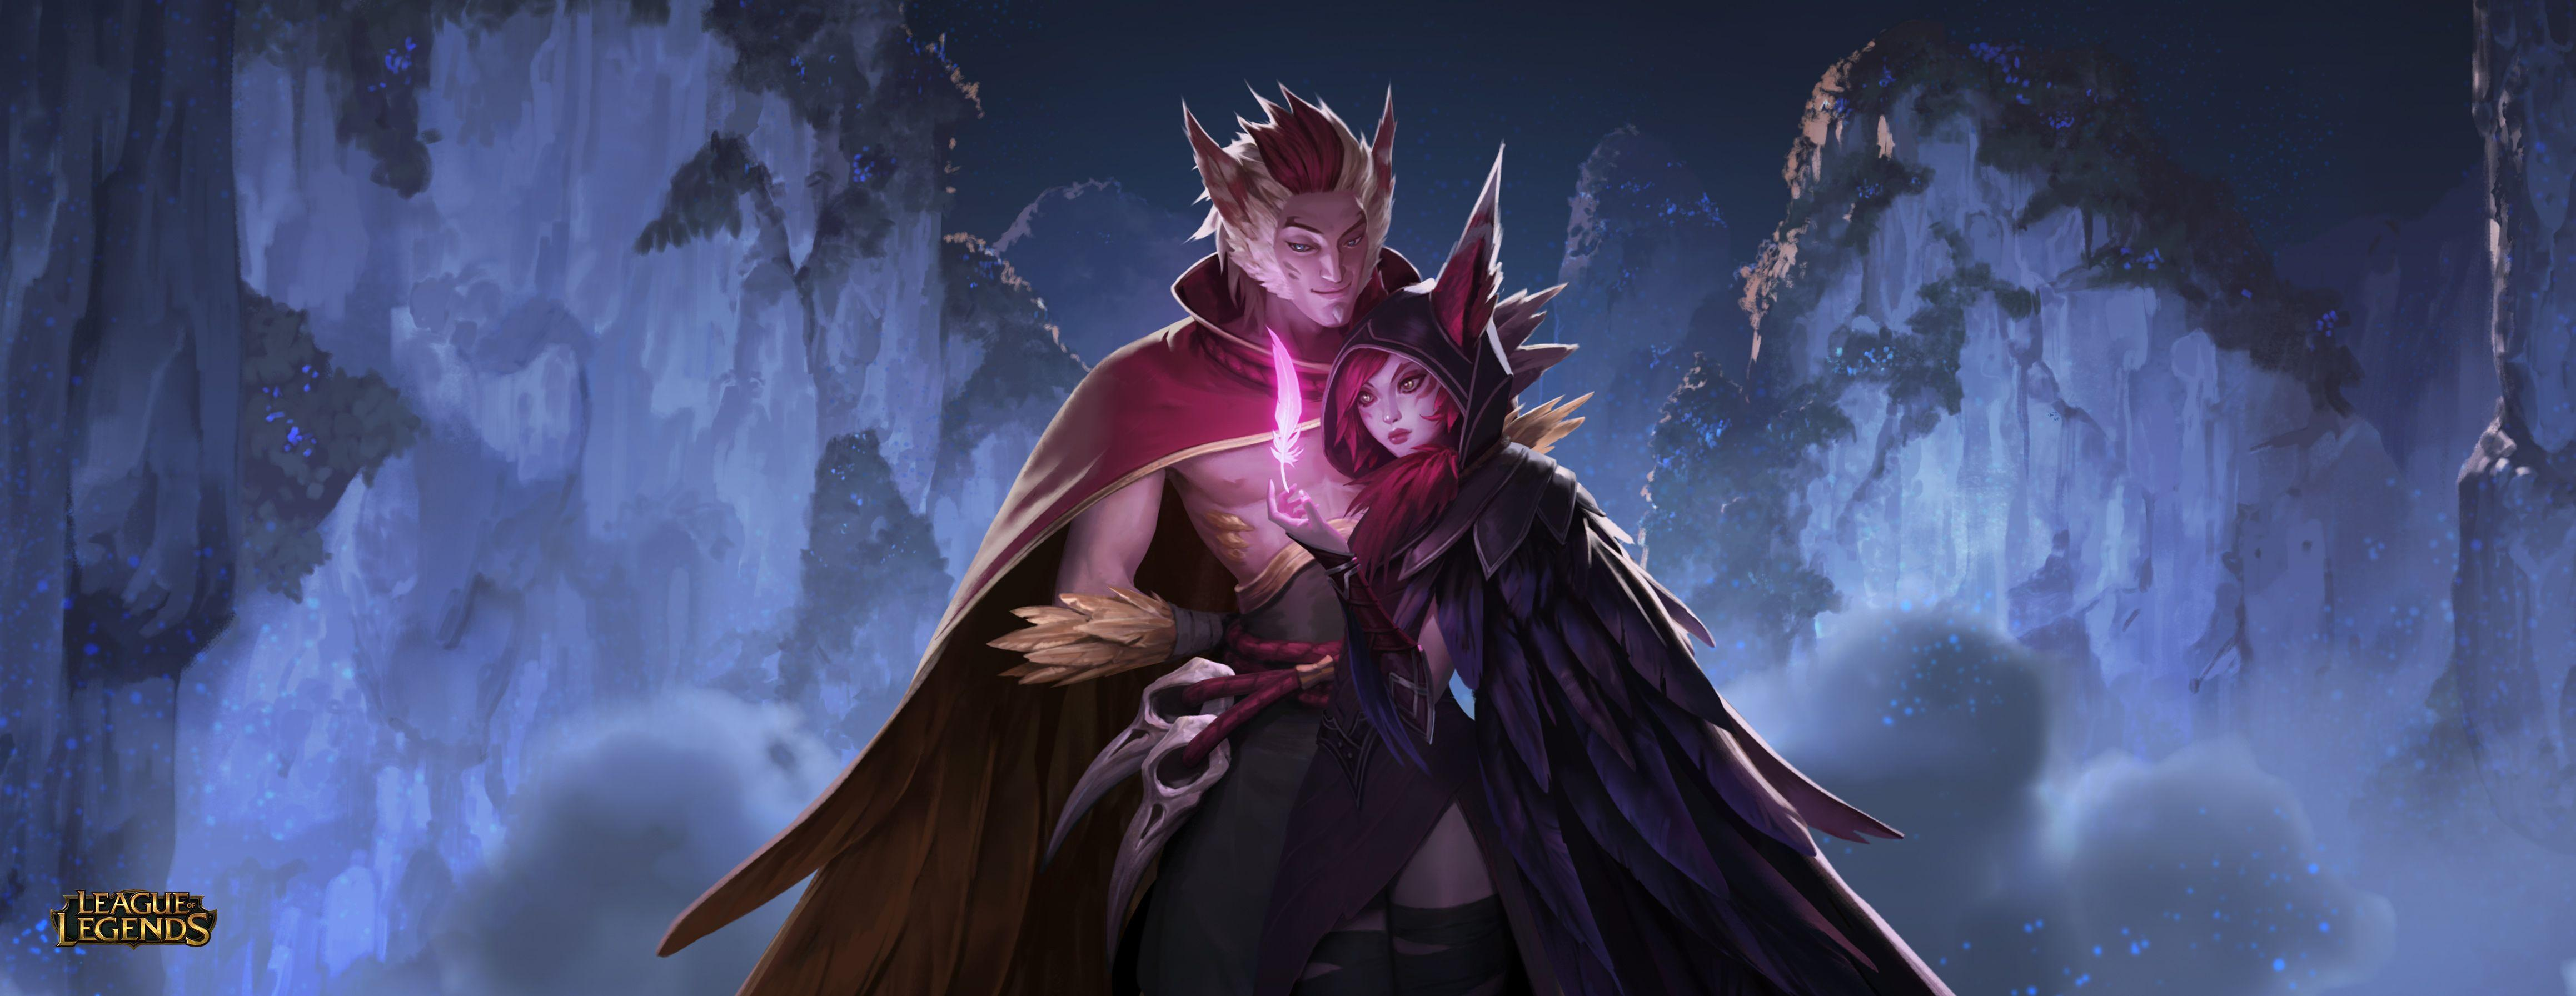 Xayah and Rakan League Of Legends Wallpapers | Art-of-LoL